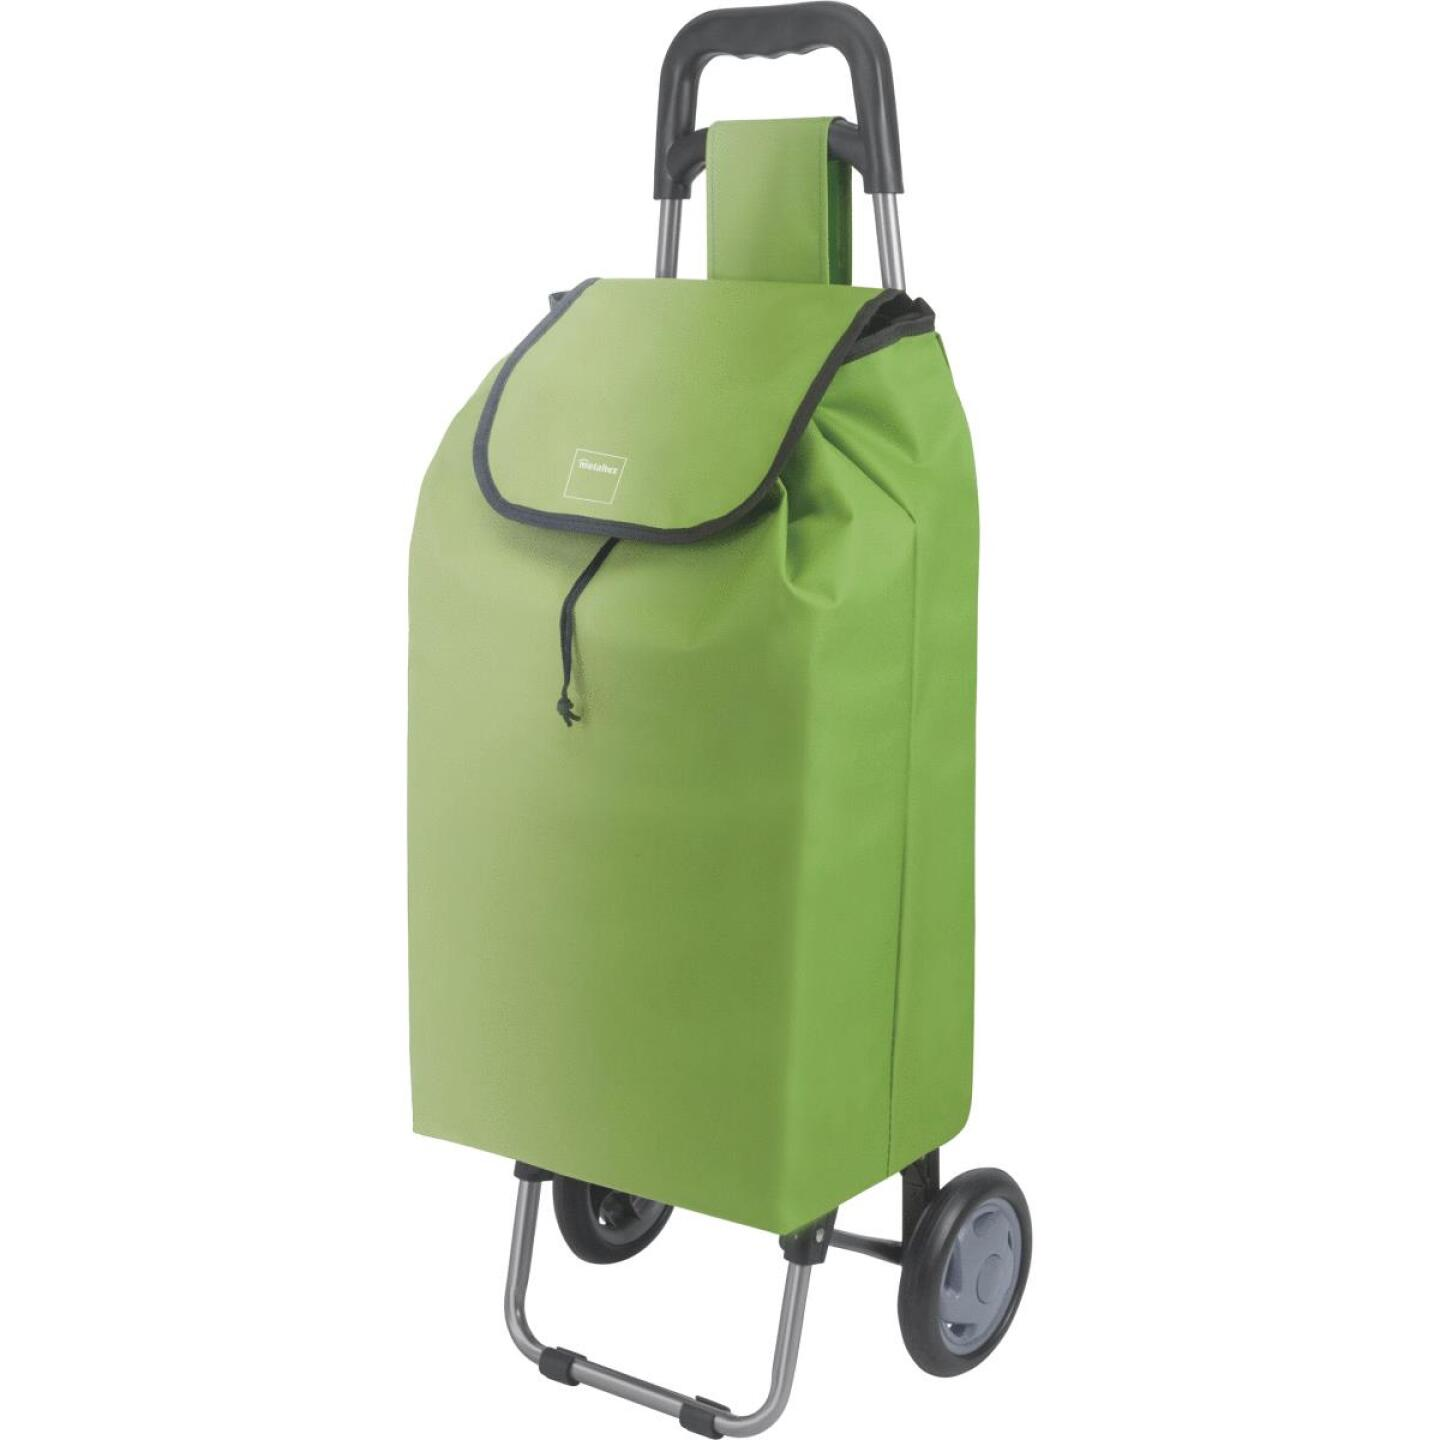 Metaltex Green 13 In. x 37 In. x 9 In. Soft Sided Tote Utility Cart Image 1